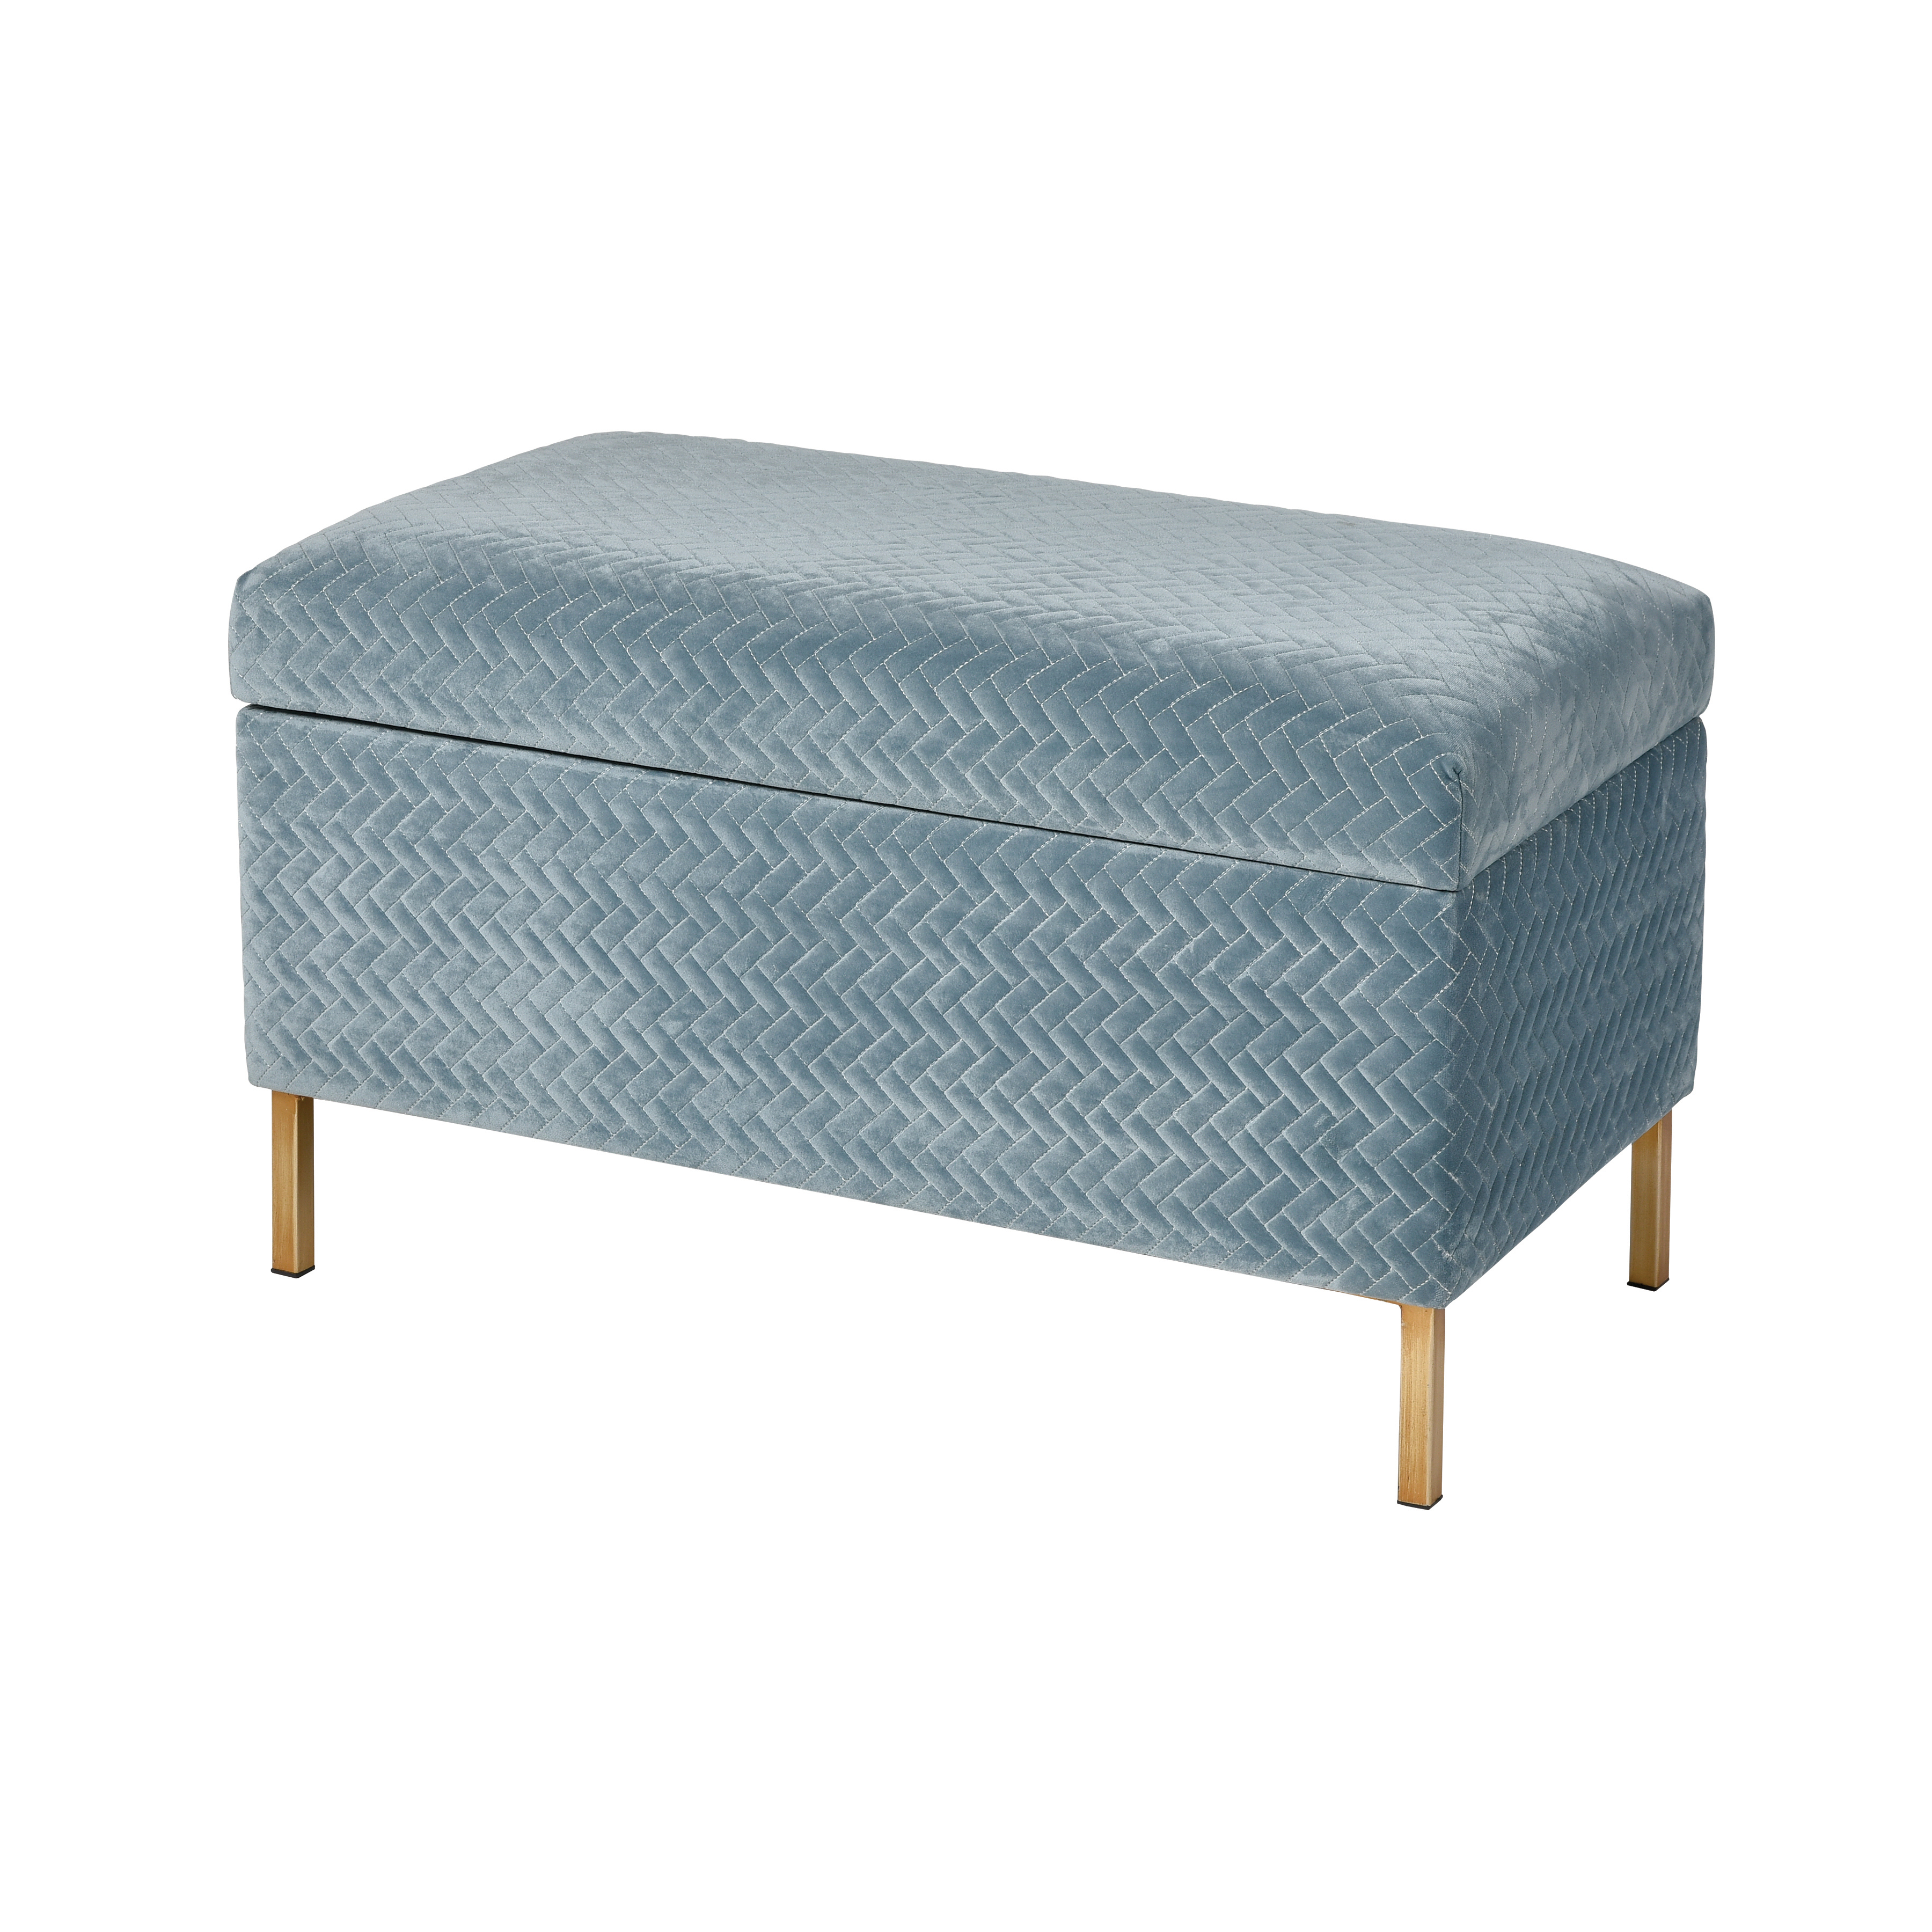 Shake Storage Bench in Blue Chenille and Gold | Elk Home